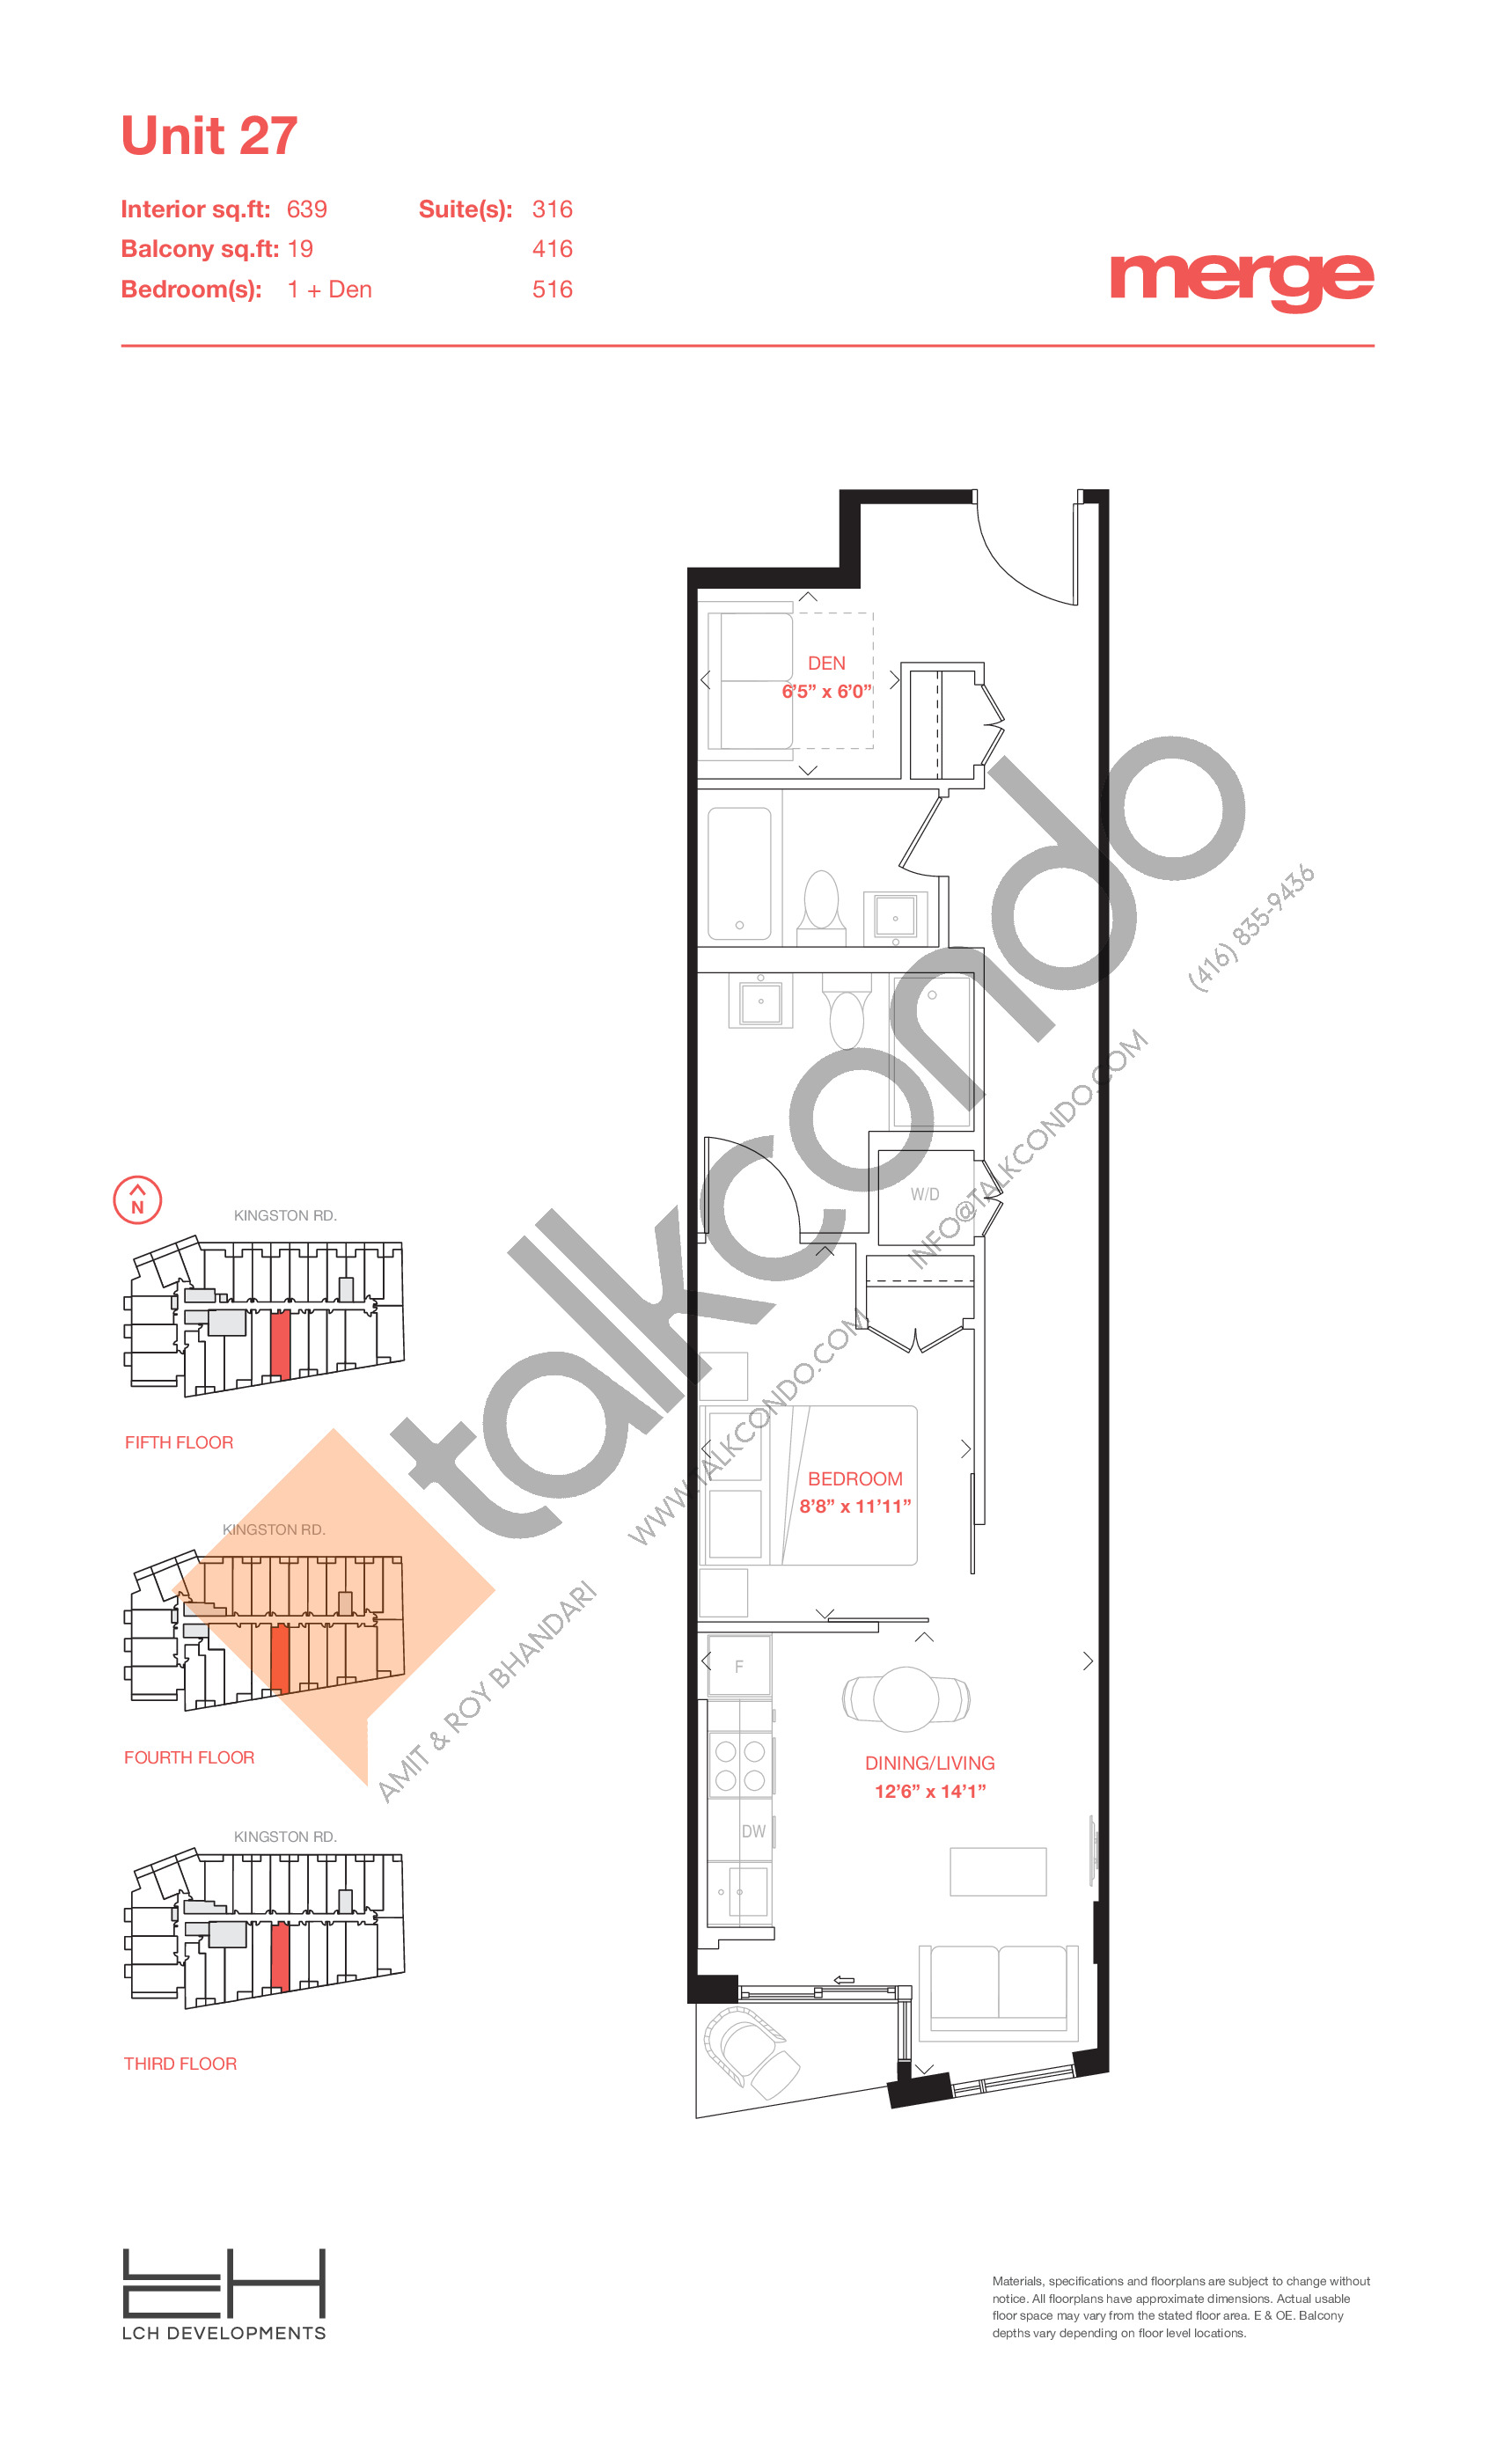 Unit 27 - Tower Floor Plan at Merge Condos - 639 sq.ft